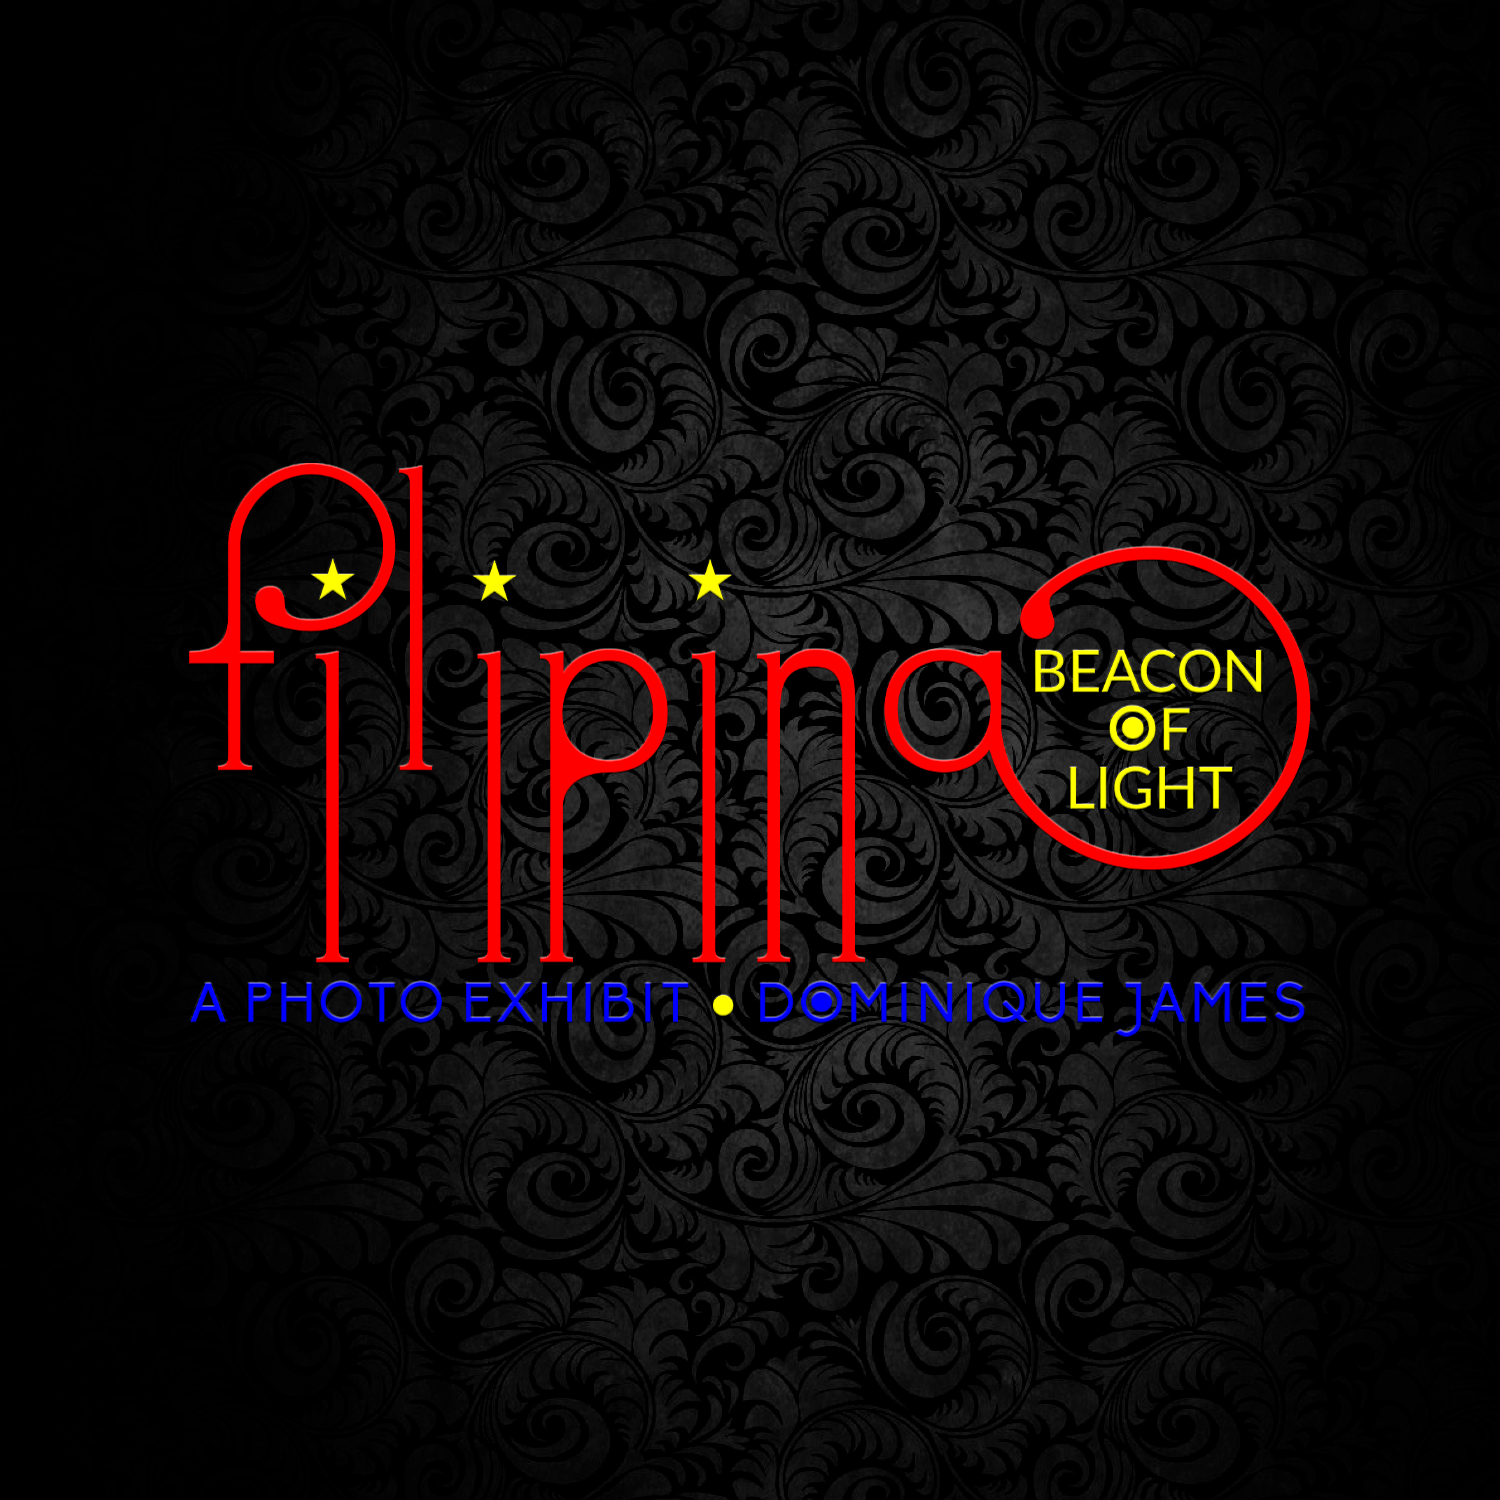 "The distinctive logo design of the  Filipina: Beacon of Light  photography exhibition, inspired and informed by some measure to the Philippine flag and its prominent red, yellow and blue colors, is crafted from the unique lower case Futuracha Pro font conceptualized, designed and created by  The Holy Team  based in Athens, Greece. Each of the three letter ""i"" with the long descending stem is accented by a yellow star instead of the typical period in order to represent the three main Philippine regions, Luzon, Visayas and Mindanao, which in Philippine literature is often depicted as the ideal Filipina woman aptly named  Luzviminda . For more information,  click here to visit the official exhibit website ."